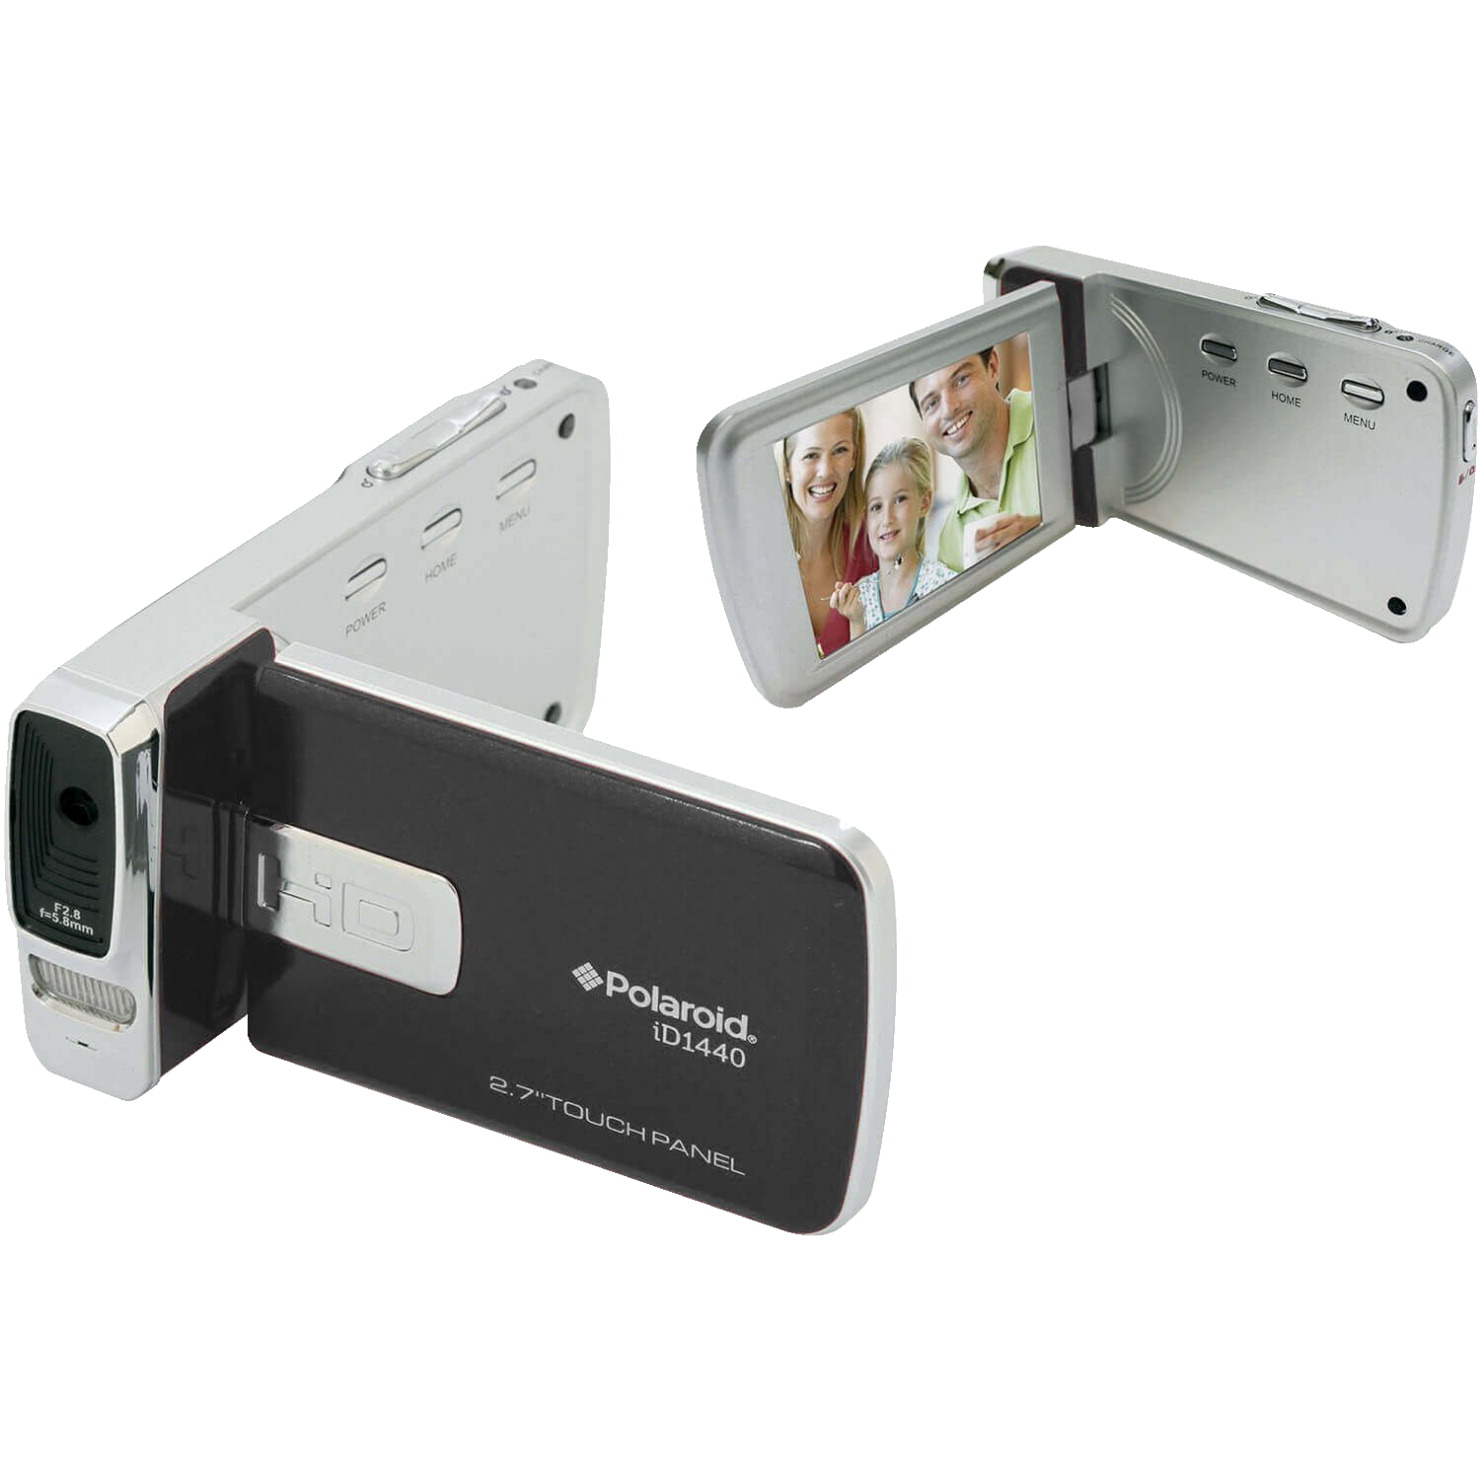 Polaroid 14MP 4x Zoom Digital Camera with 2.7 inch LCD Screen, Black